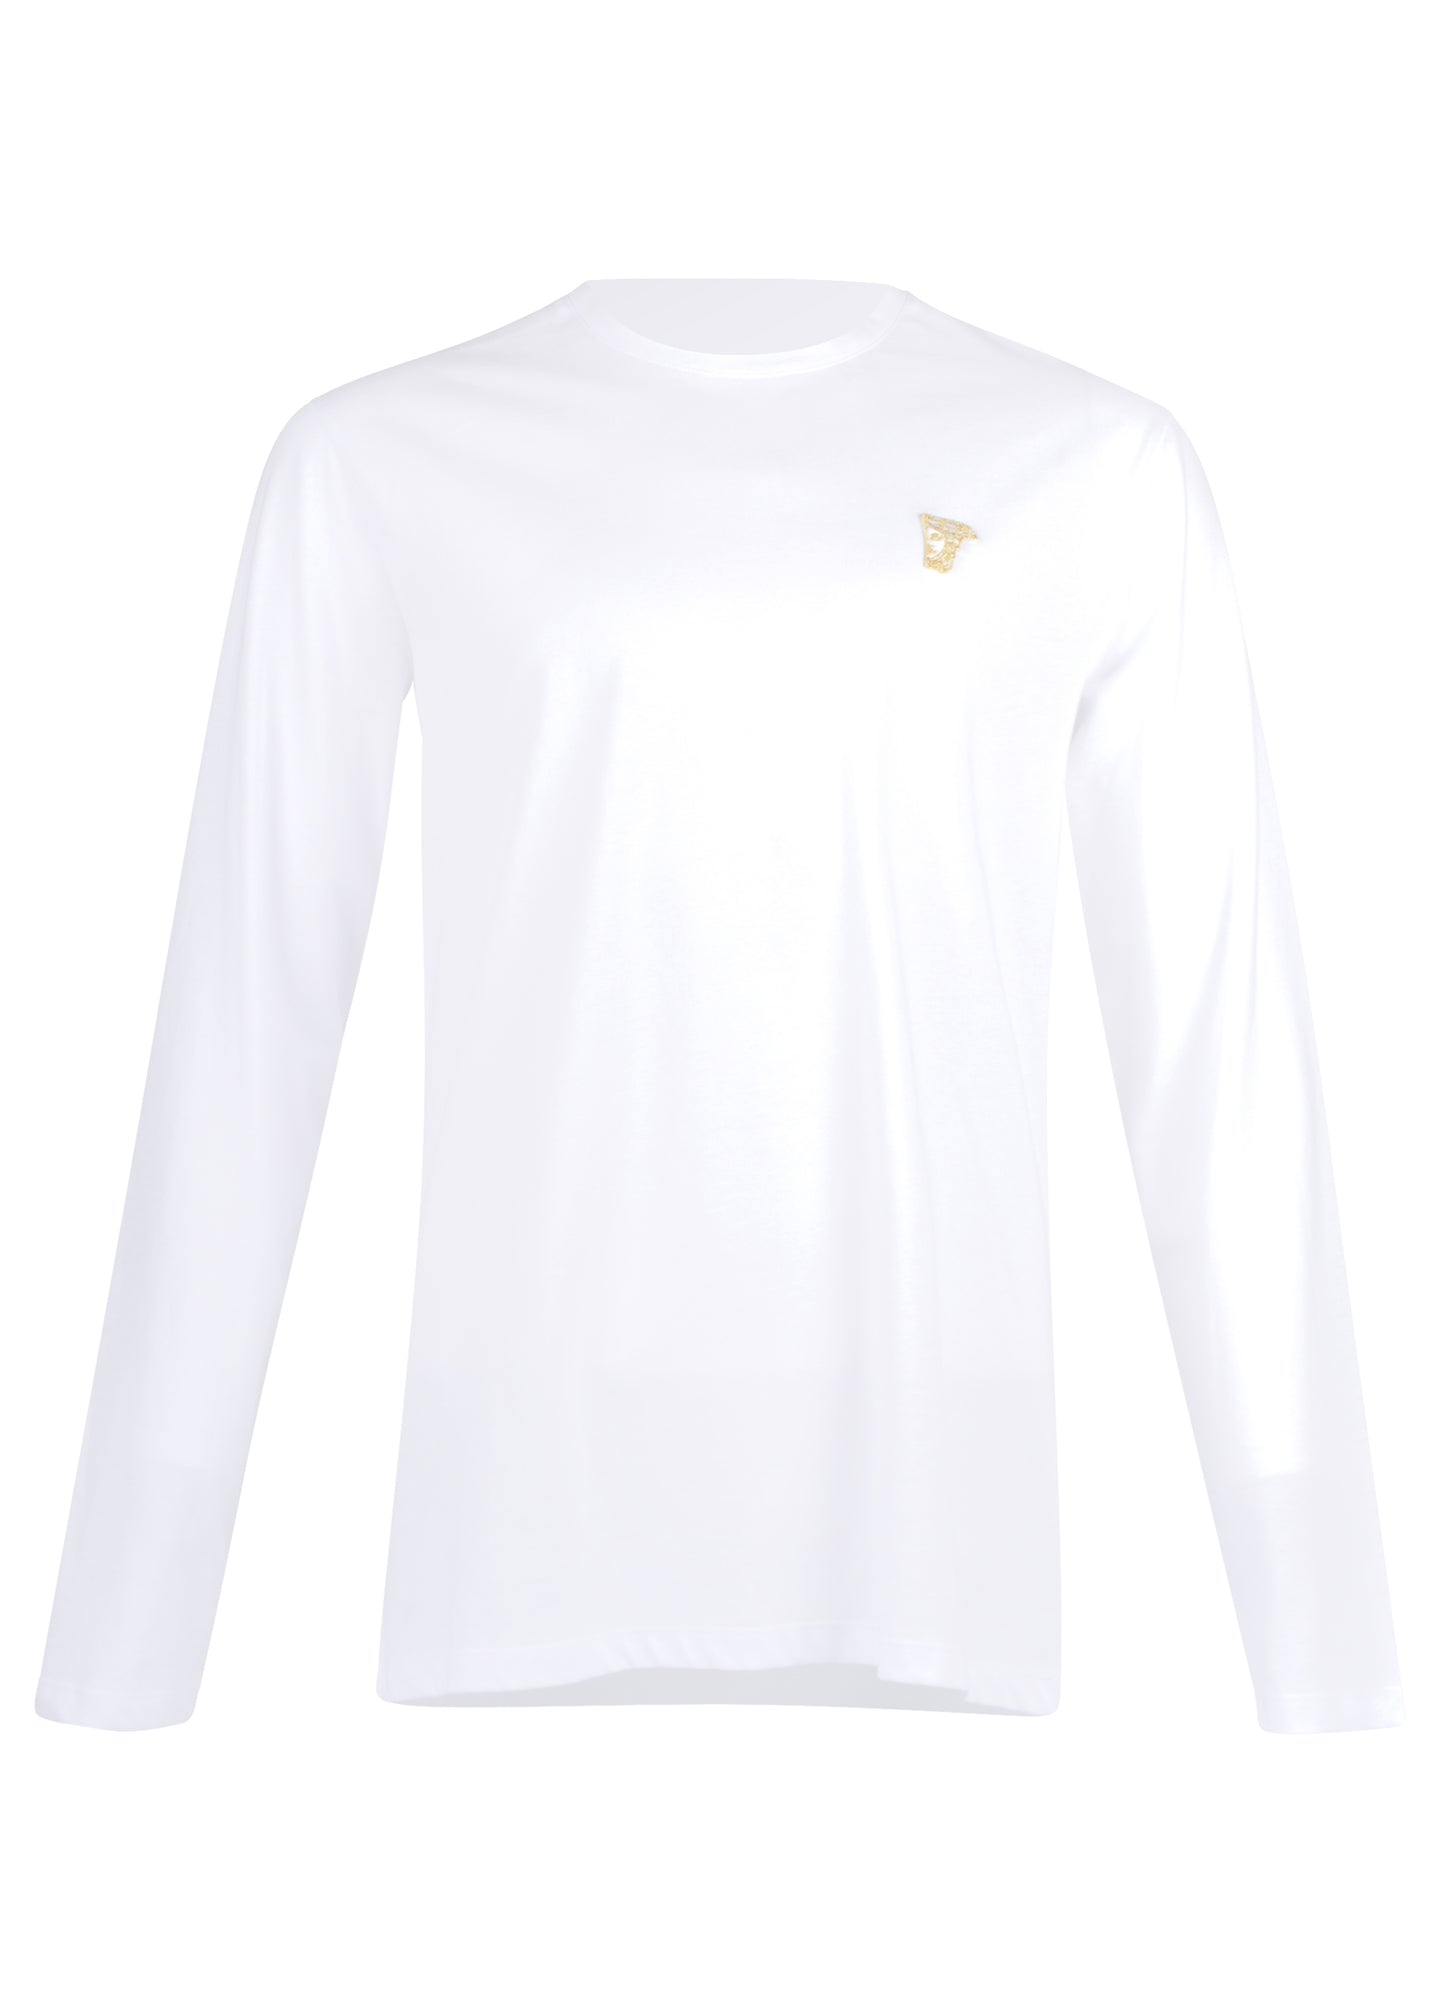 Versace Collection - Classic Long Sleeve Iconic Half Medusa T-Shirt - 097001 - V800491R - White Gold